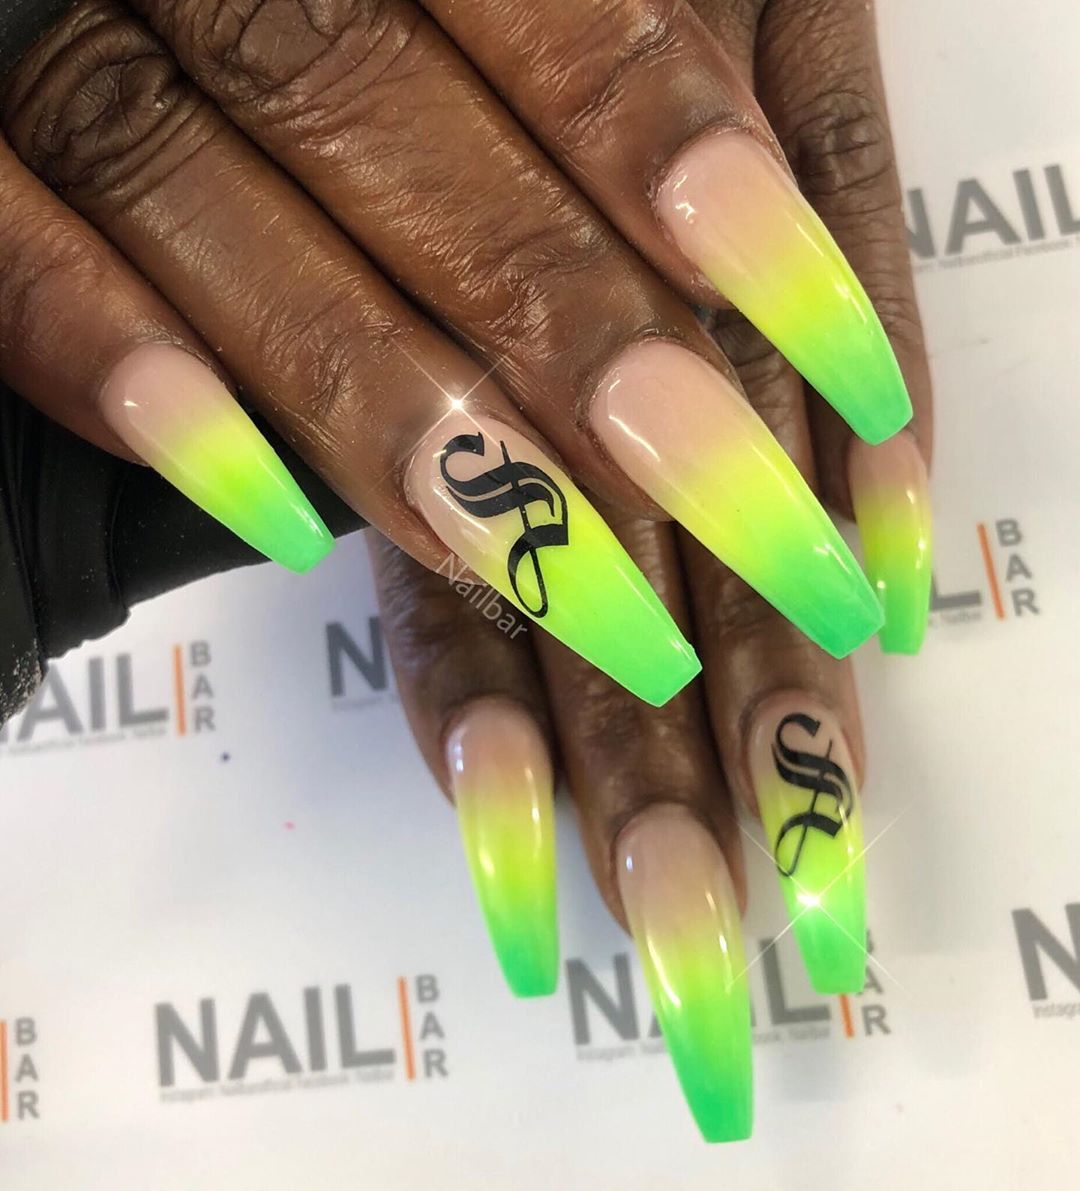 Carnival Glow Nails Lold English Letters From Kpcreatemyvision With Glow Powder From Designsbyvnailart Prayforannie Nailar Carnival Nails Glow Nails Nails